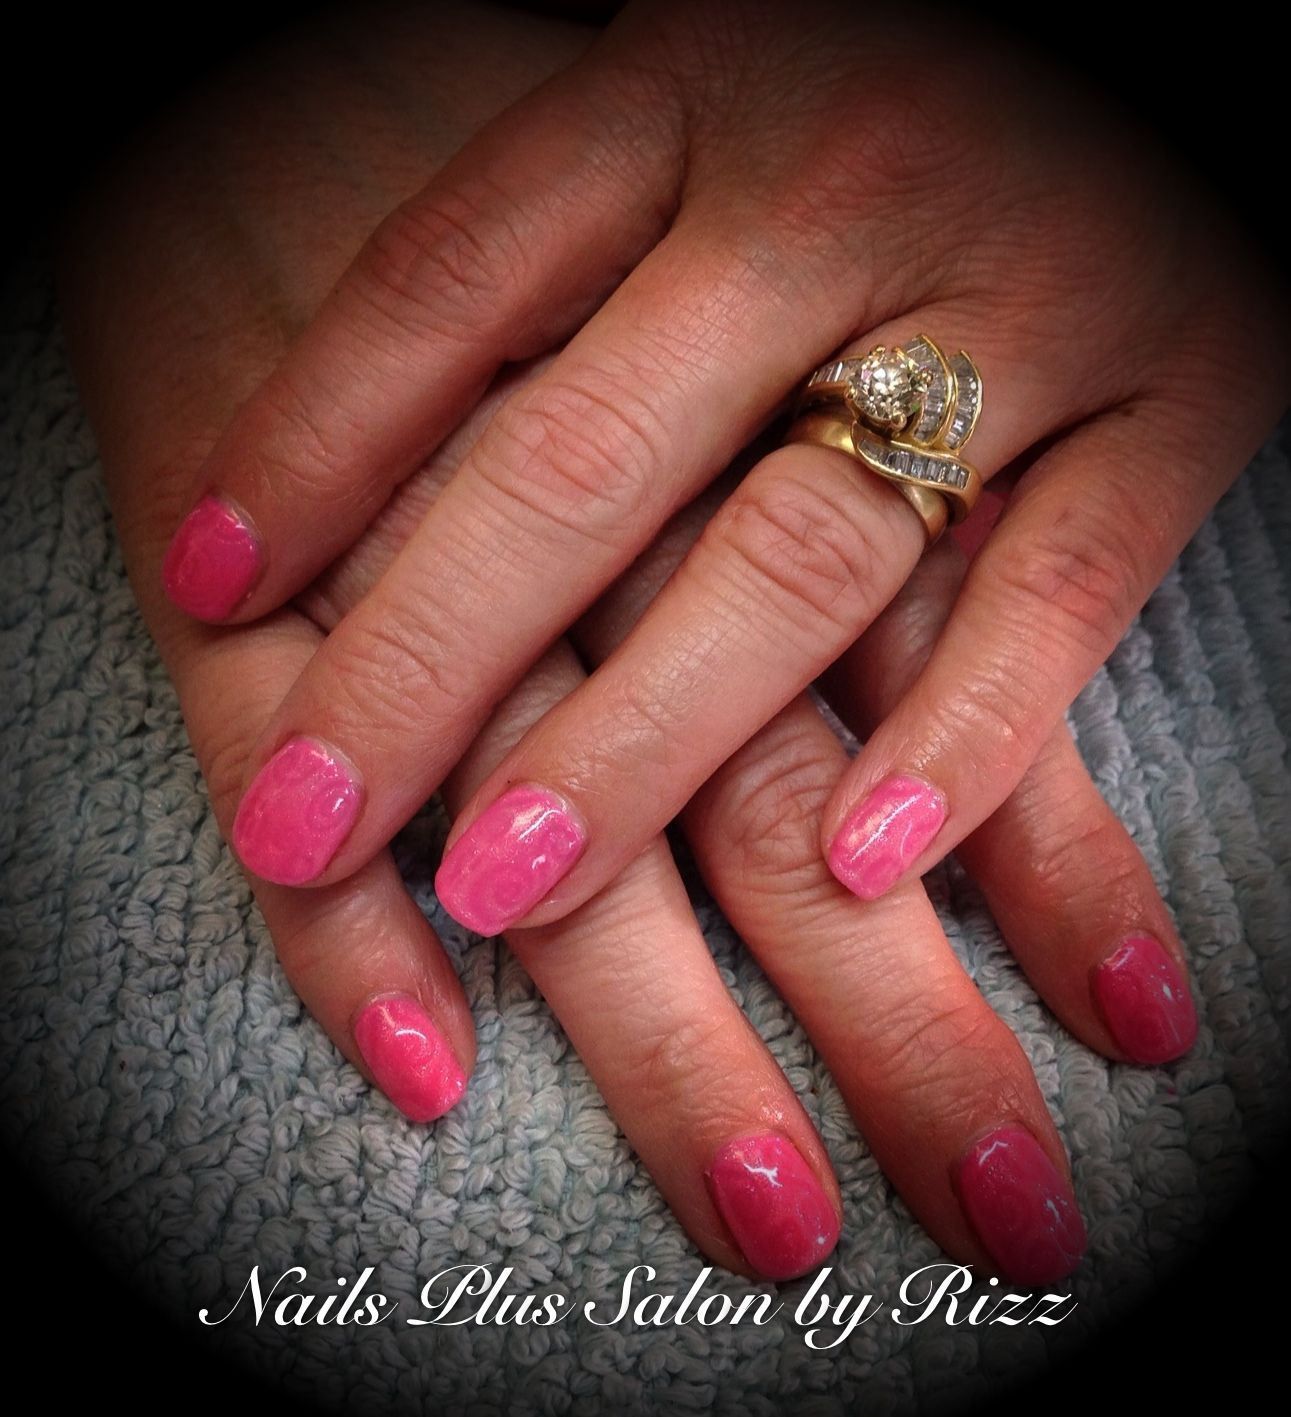 Nail Spa Plus http://www.pinterest.com/pin/372743306629310131/